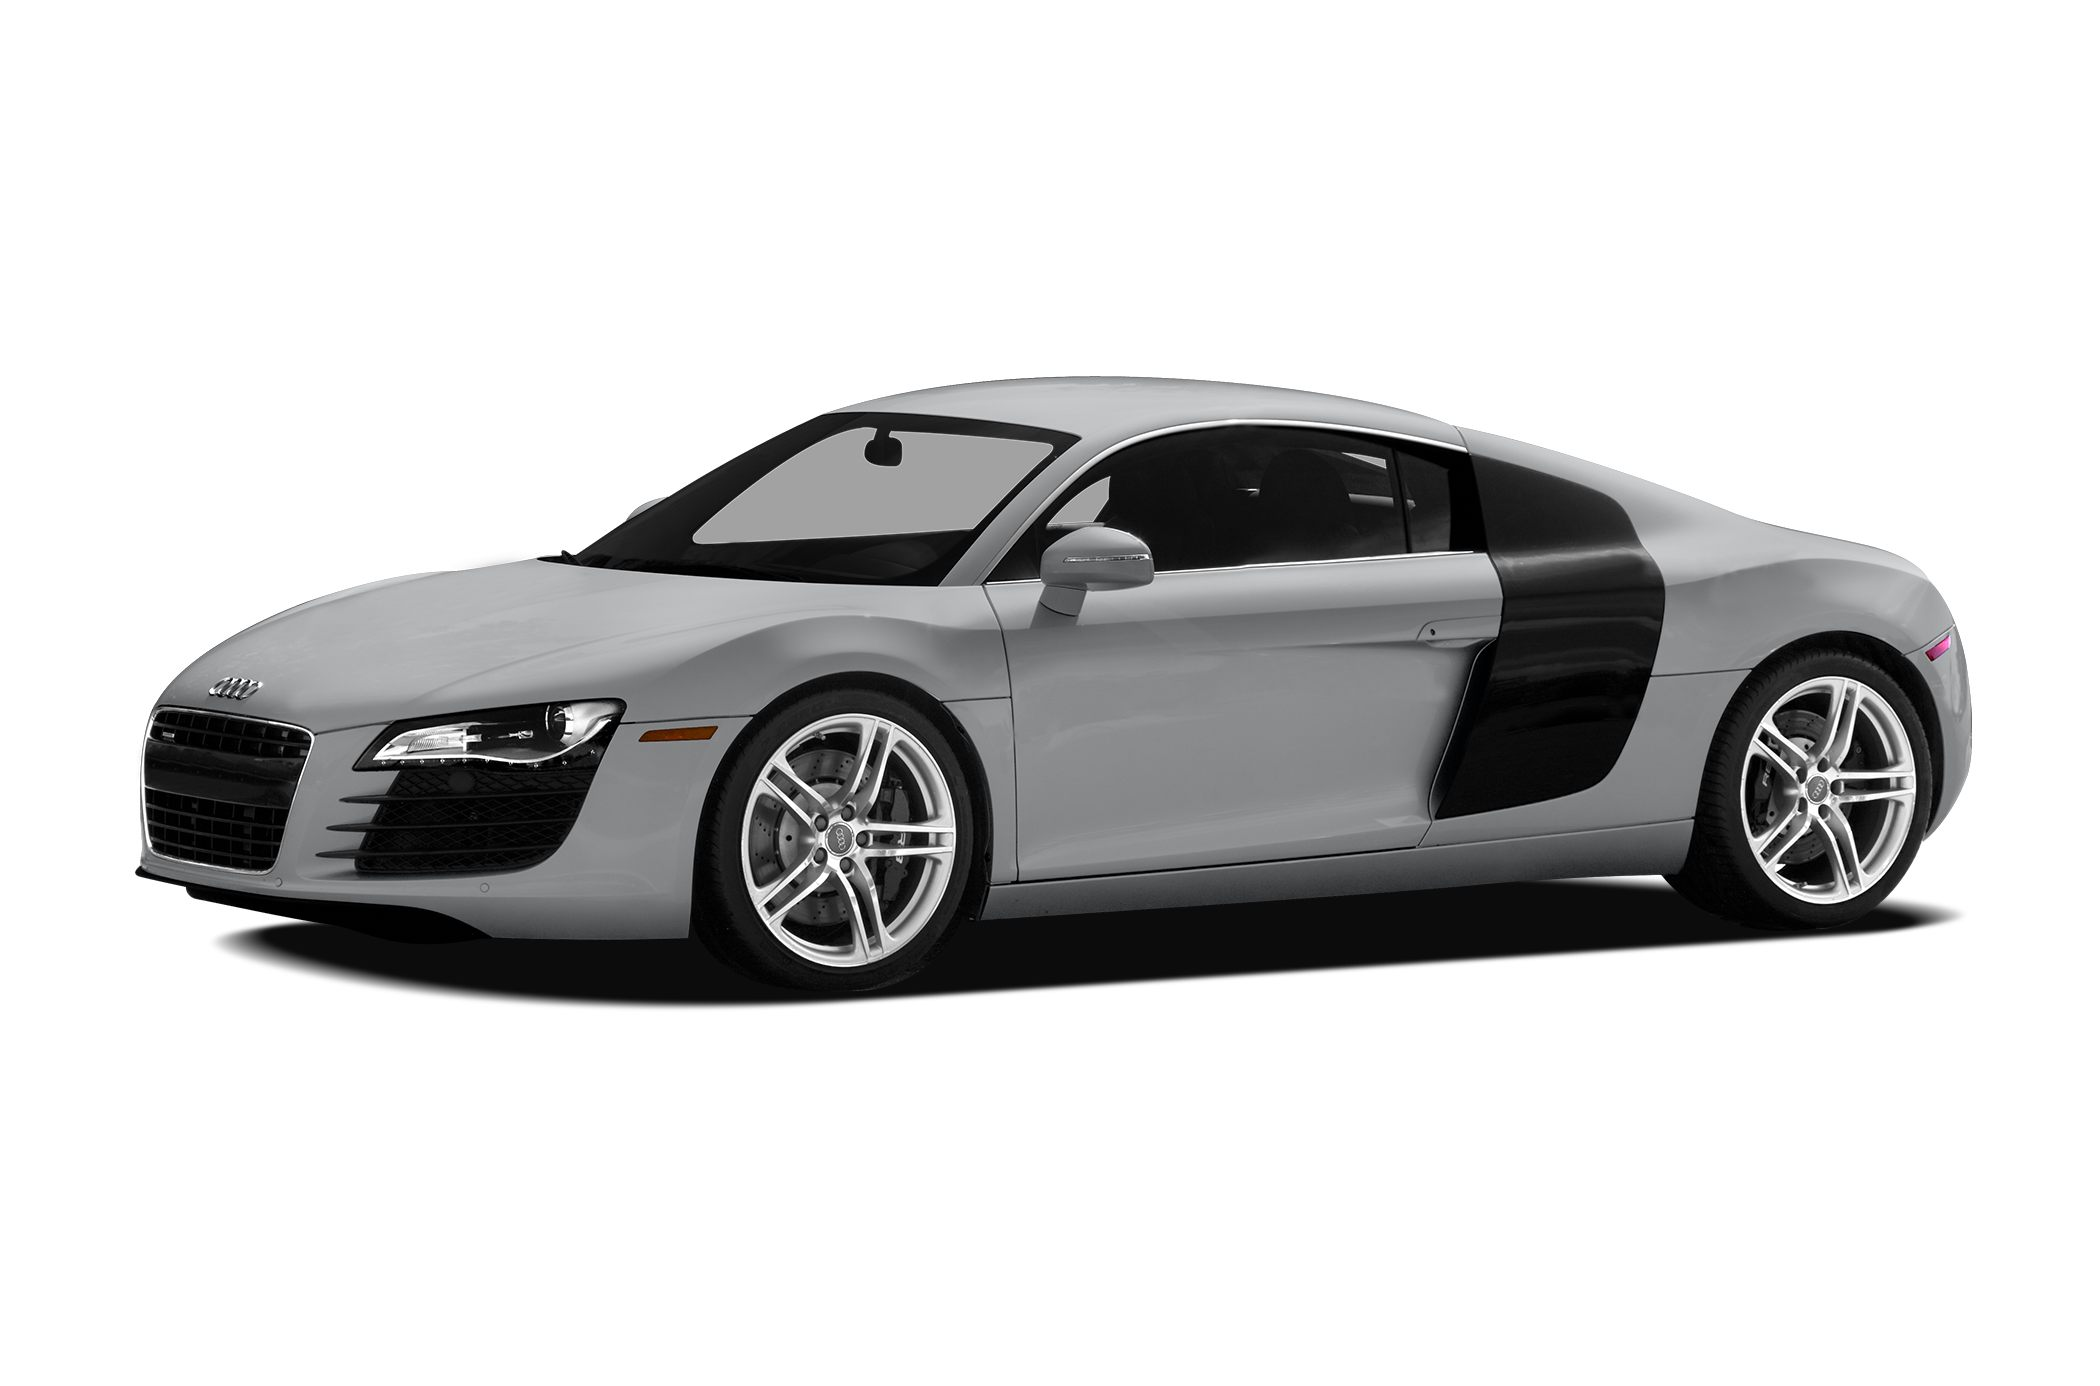 2009 Audi R8